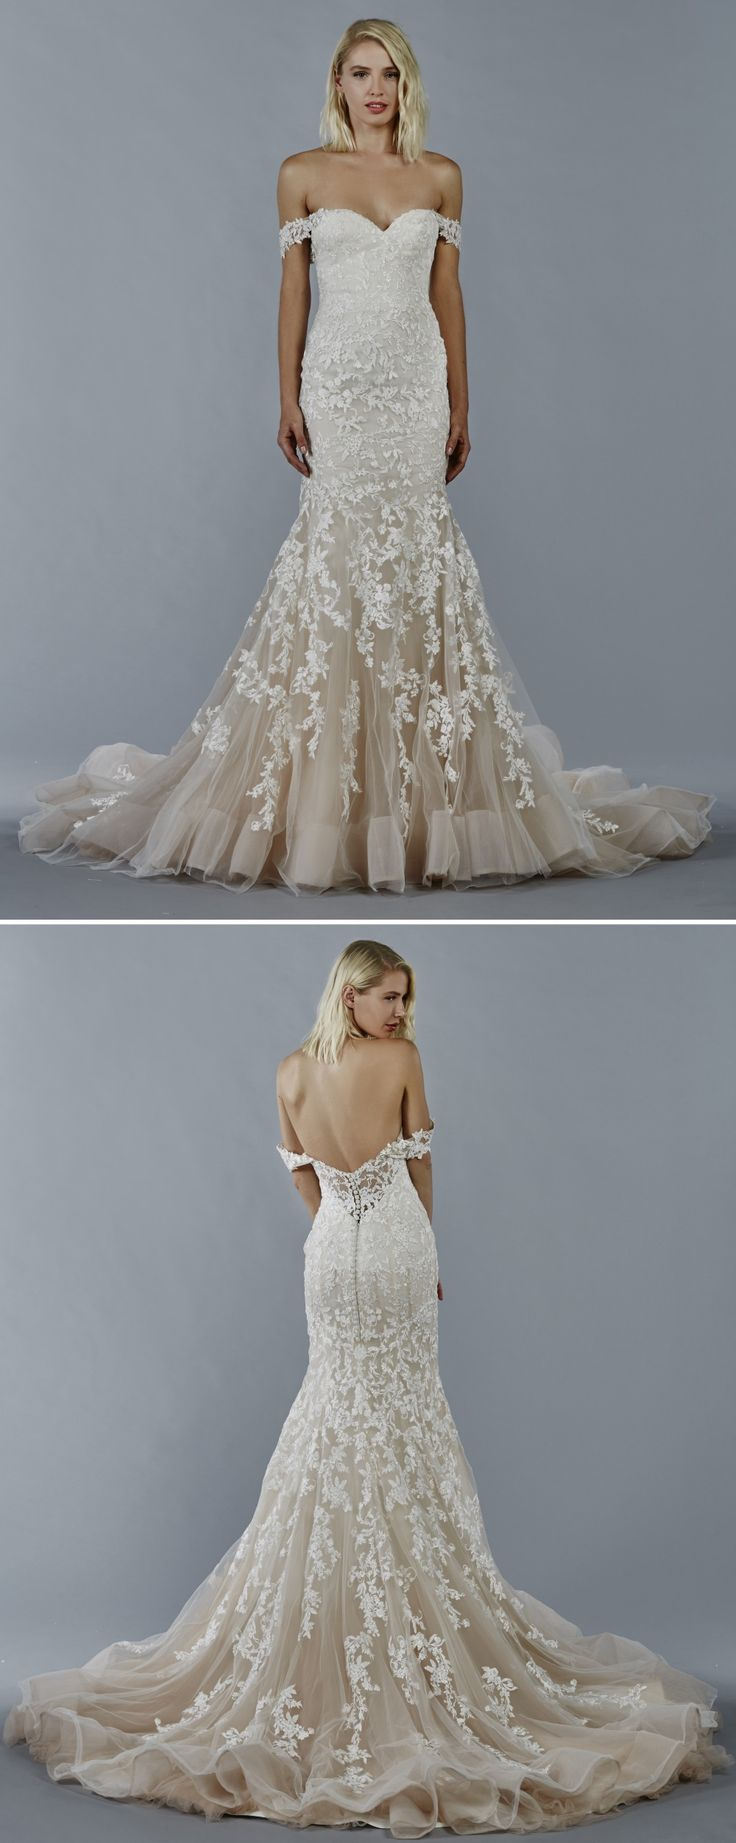 Luna wedding dress by Kelly Faetanini in Blush // Ombre blush fit to flare with off the shoulder neckline and embroidered appliques #weddingdress